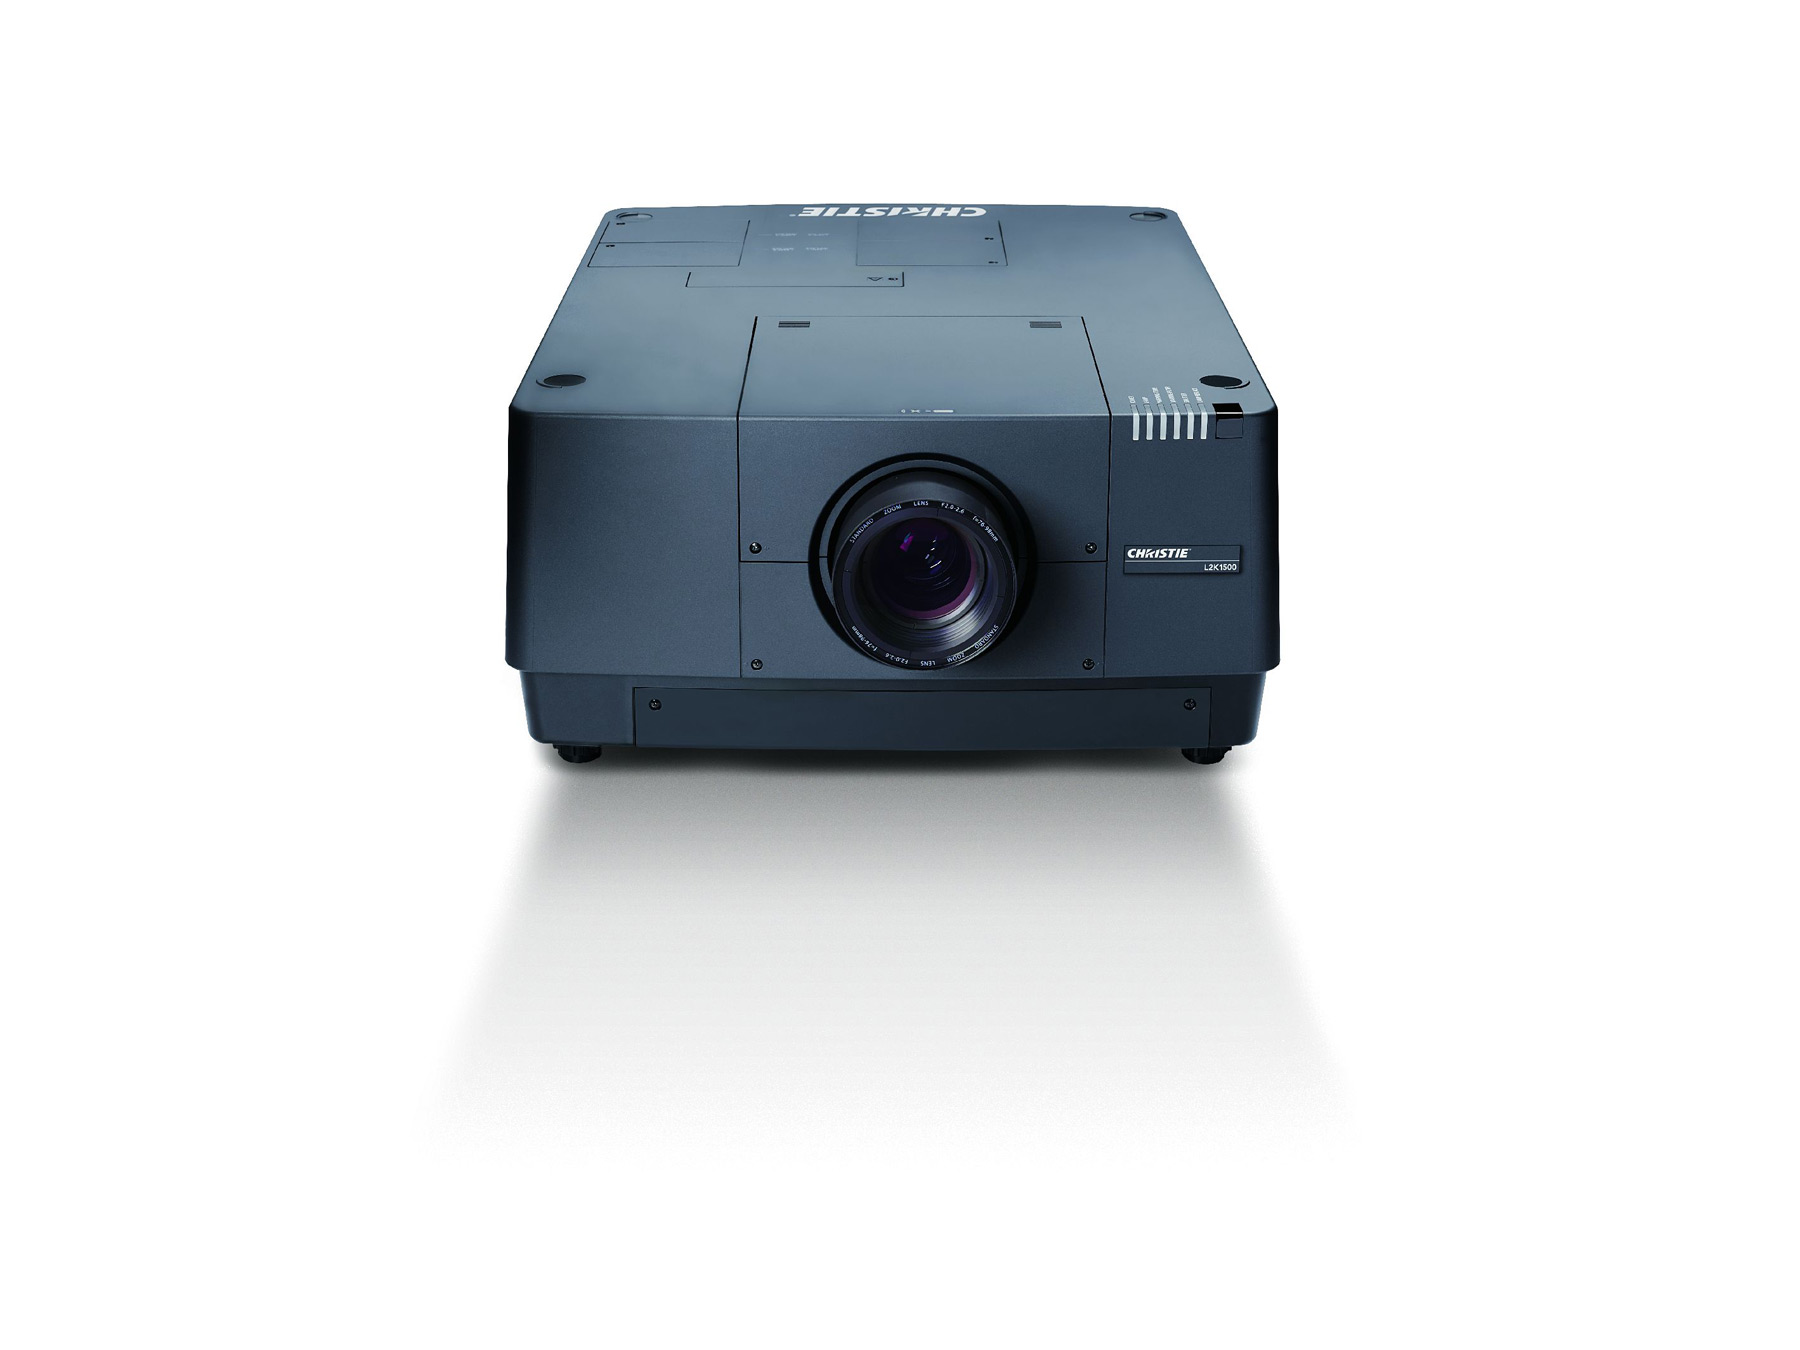 /globalassets/.catalog/products/images/christie-l2k1500/gallery/christie-l2k-1500-3-lcd-digital-projector-image-19.jpg